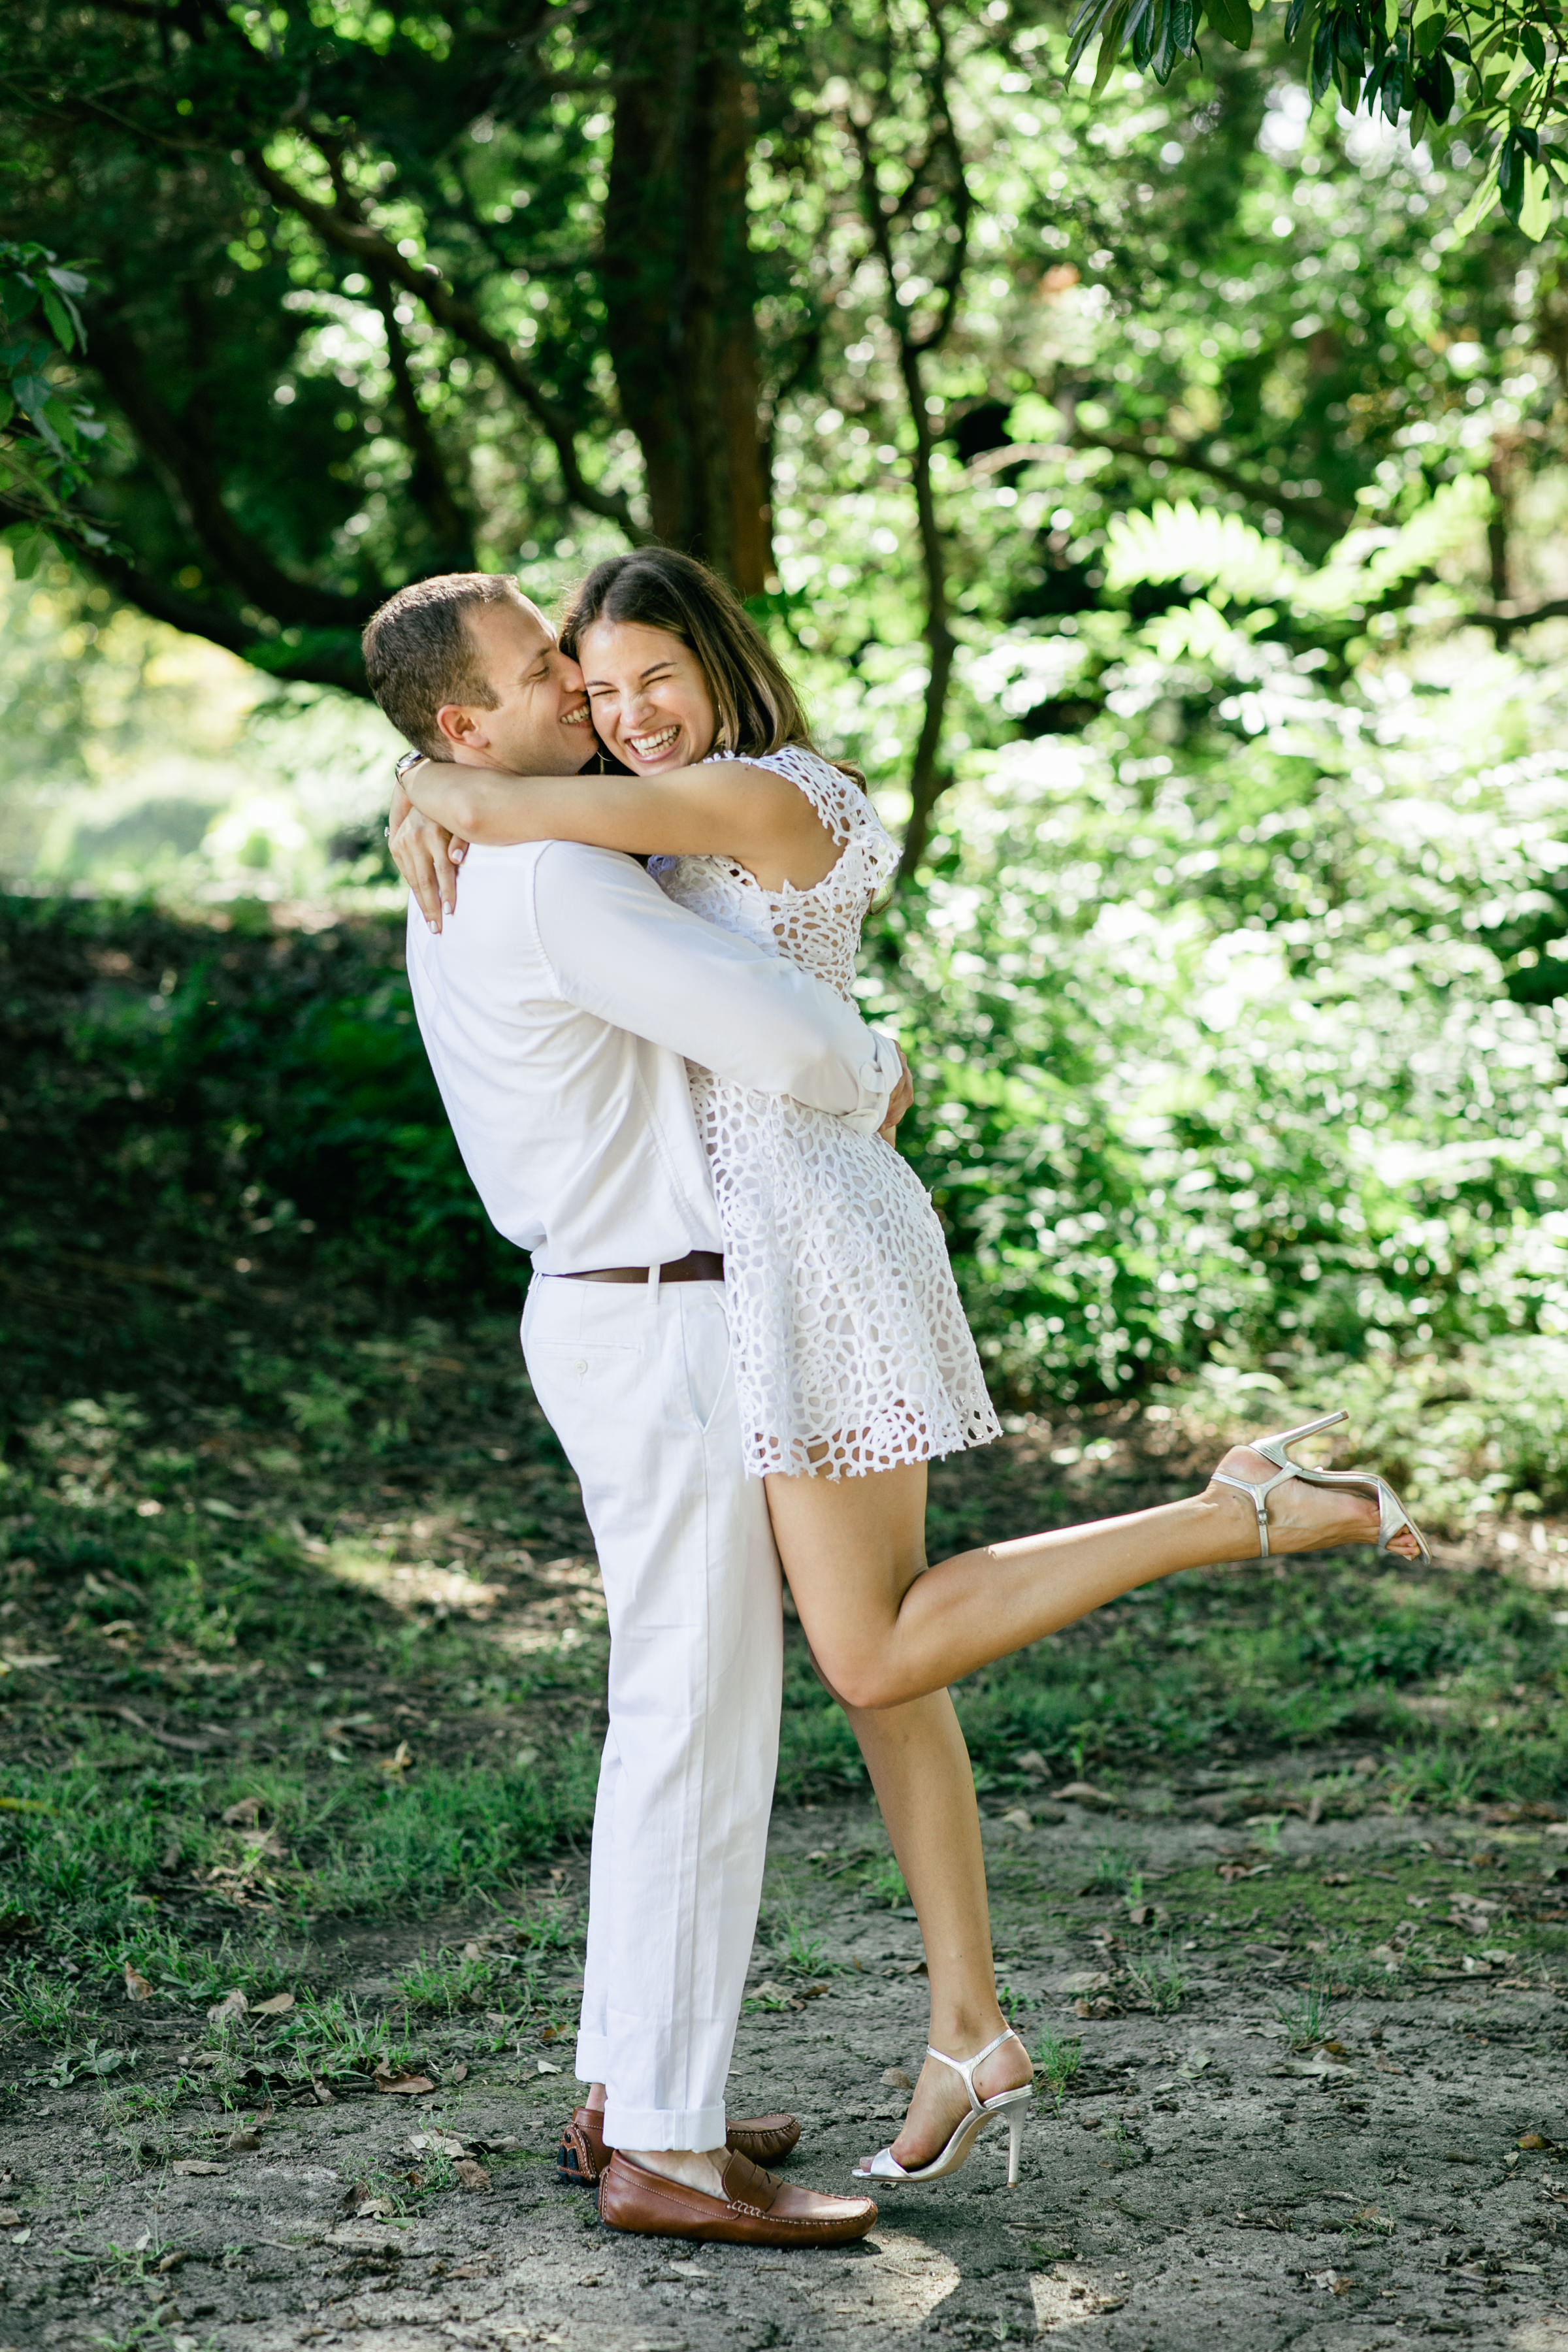 photography-family-natural-candid-engaged-fairmount-philadelphia-wedding-horticultural center-modern-lifestyle-27.JPG